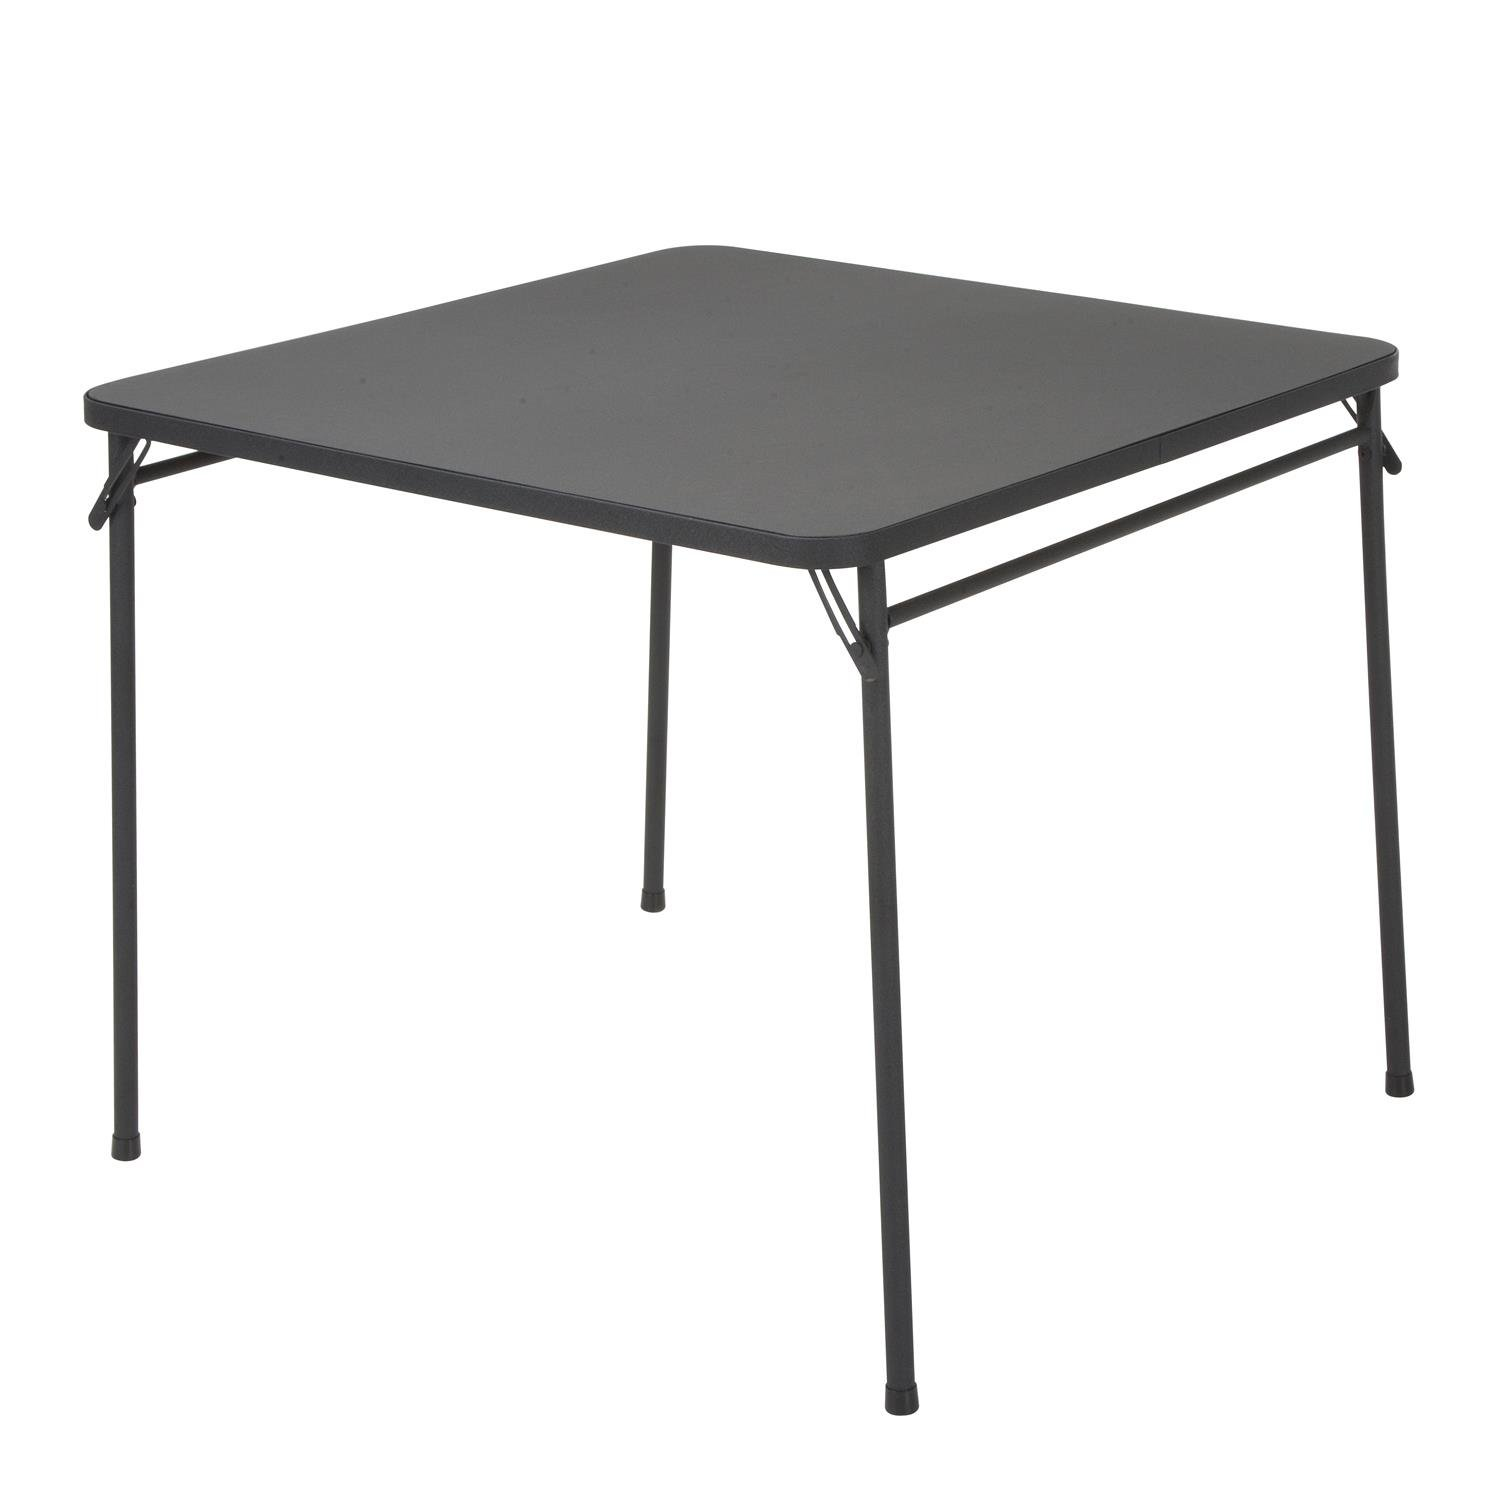 Cosco Products 34'' Square Resin Top Folding Table, Black